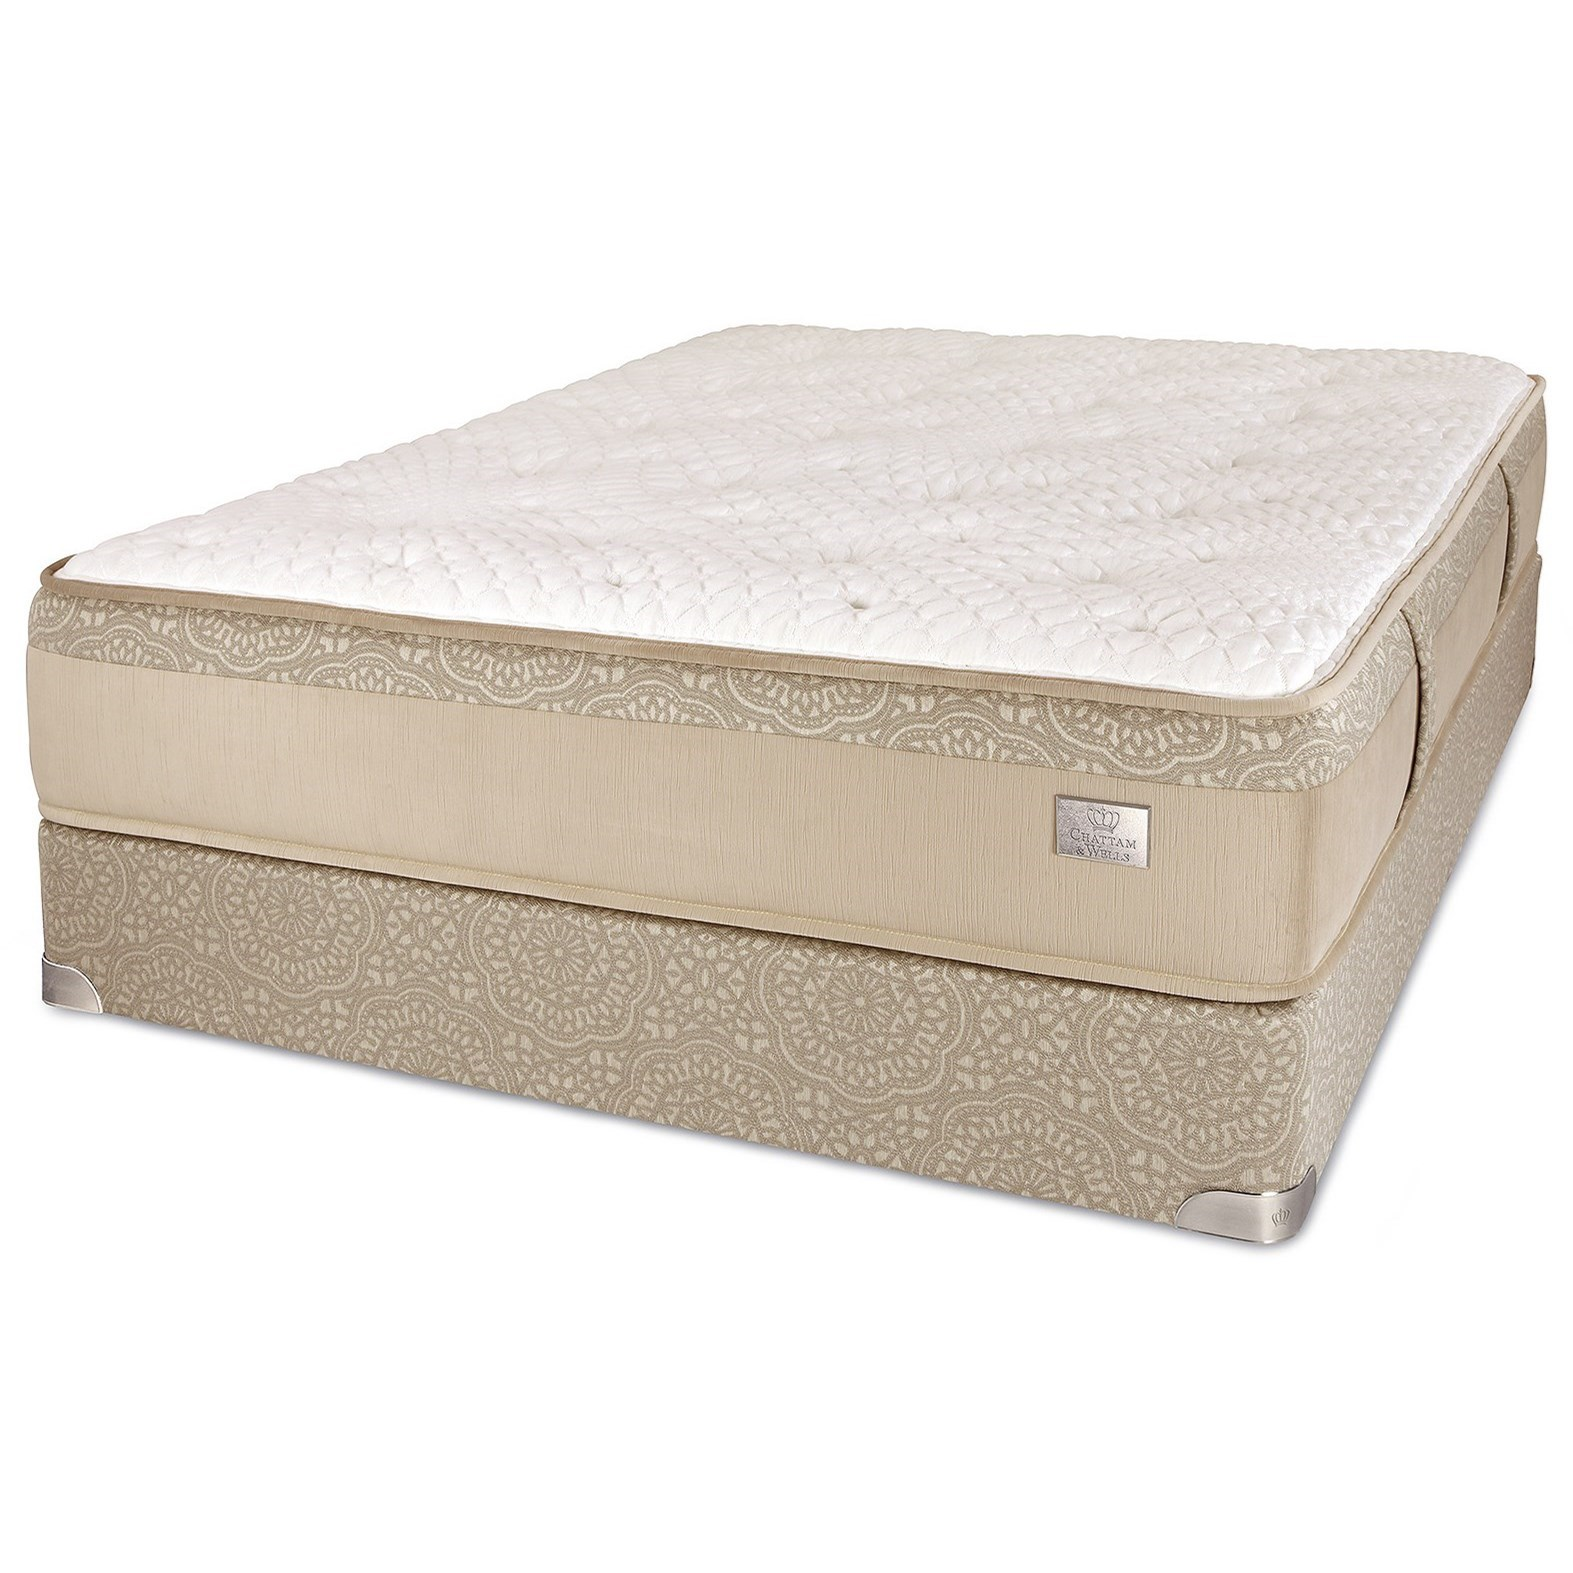 Elite Firm TT King Firm Coil on Coil Mattress Set by Spring Air at Steger's Furniture